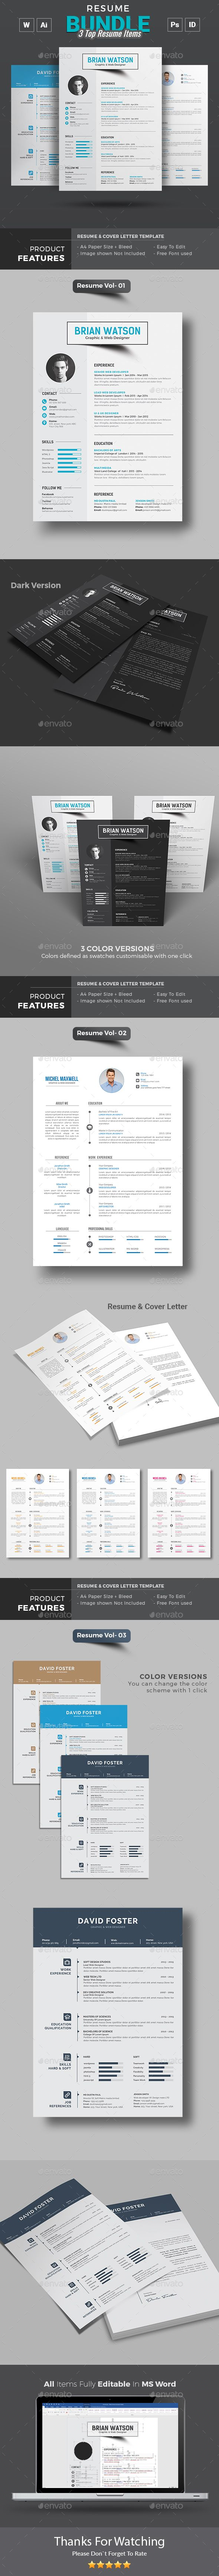 Resume by themedevisers Clean Resume Word Template Bundle. Elegant page designs are easy to use and customize, so you can quickly tailor-make your resume